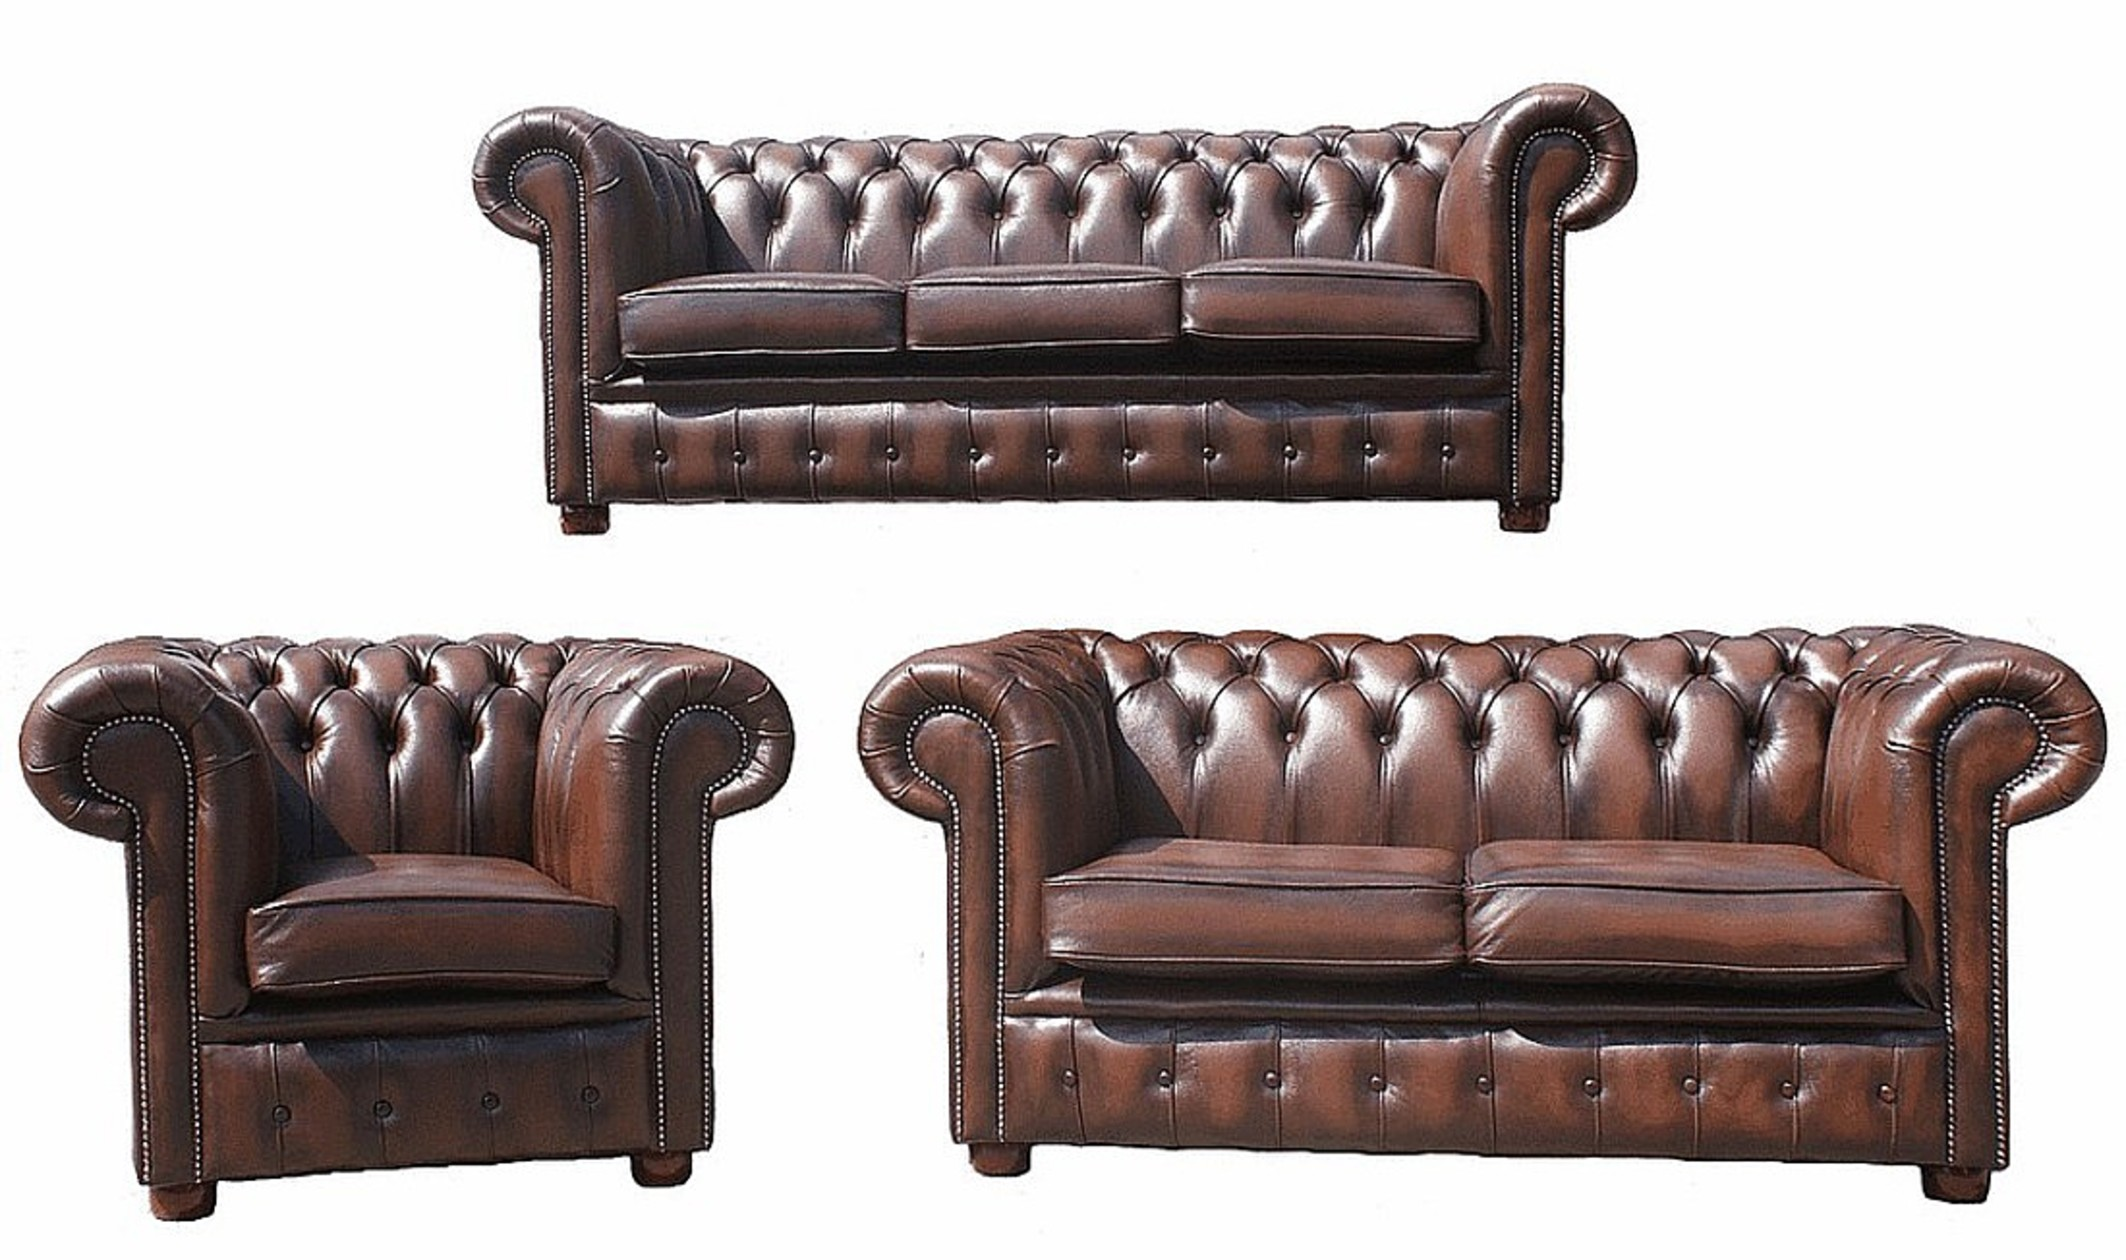 Charmant Chesterfield 3+2+1 Leather Sofa Offer Antique Brown, Chesterfield Leather  Sofa, UK Manufactured, Leather Sofas, Traditional Sofas